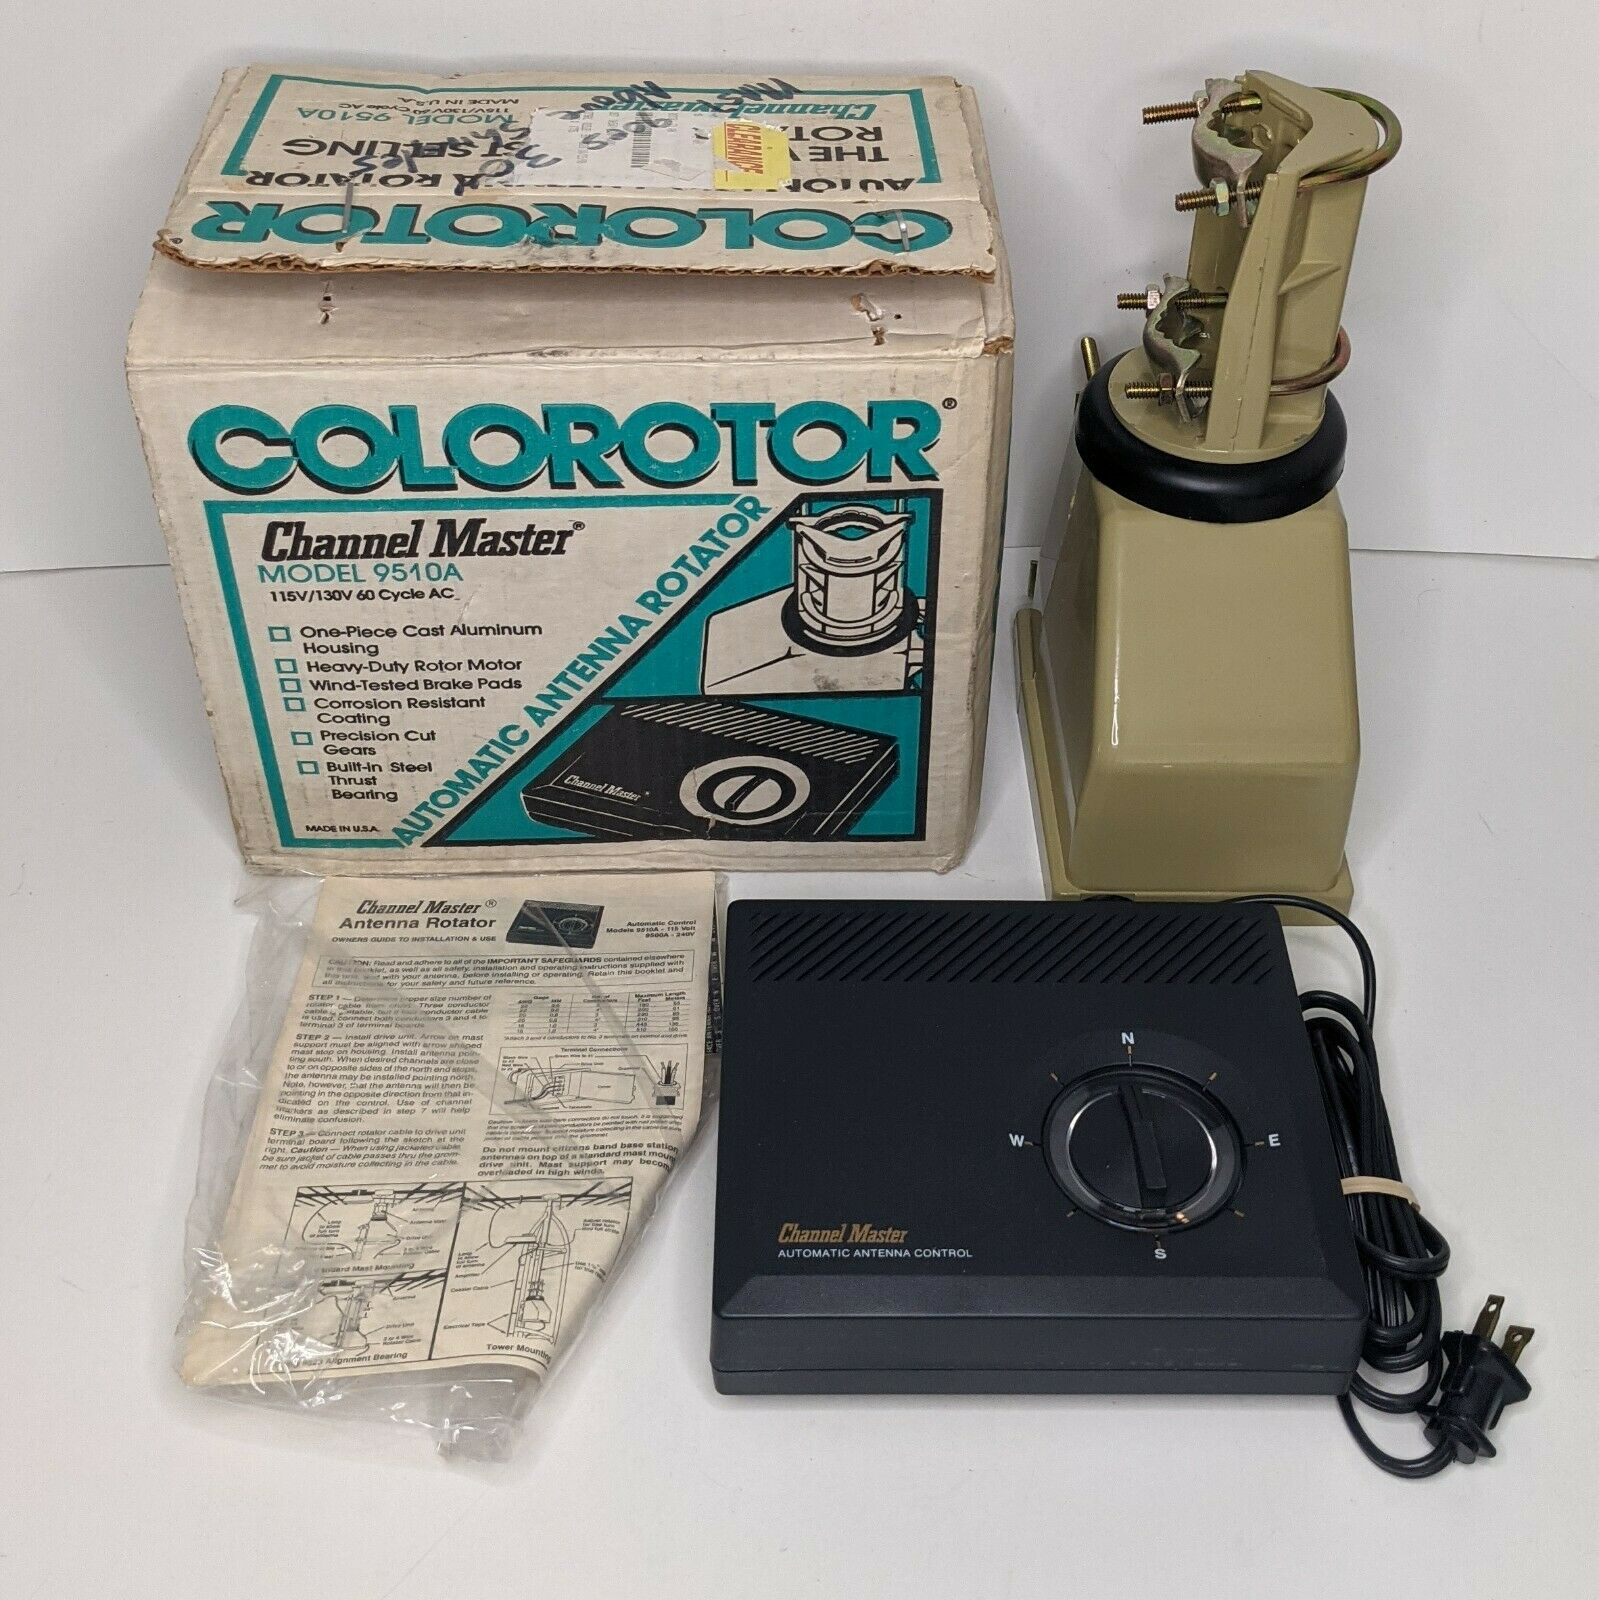 Vintage New Colorotor Channel Master Automatic Antenna Rotator Model 9510A. Available Now for 249.99